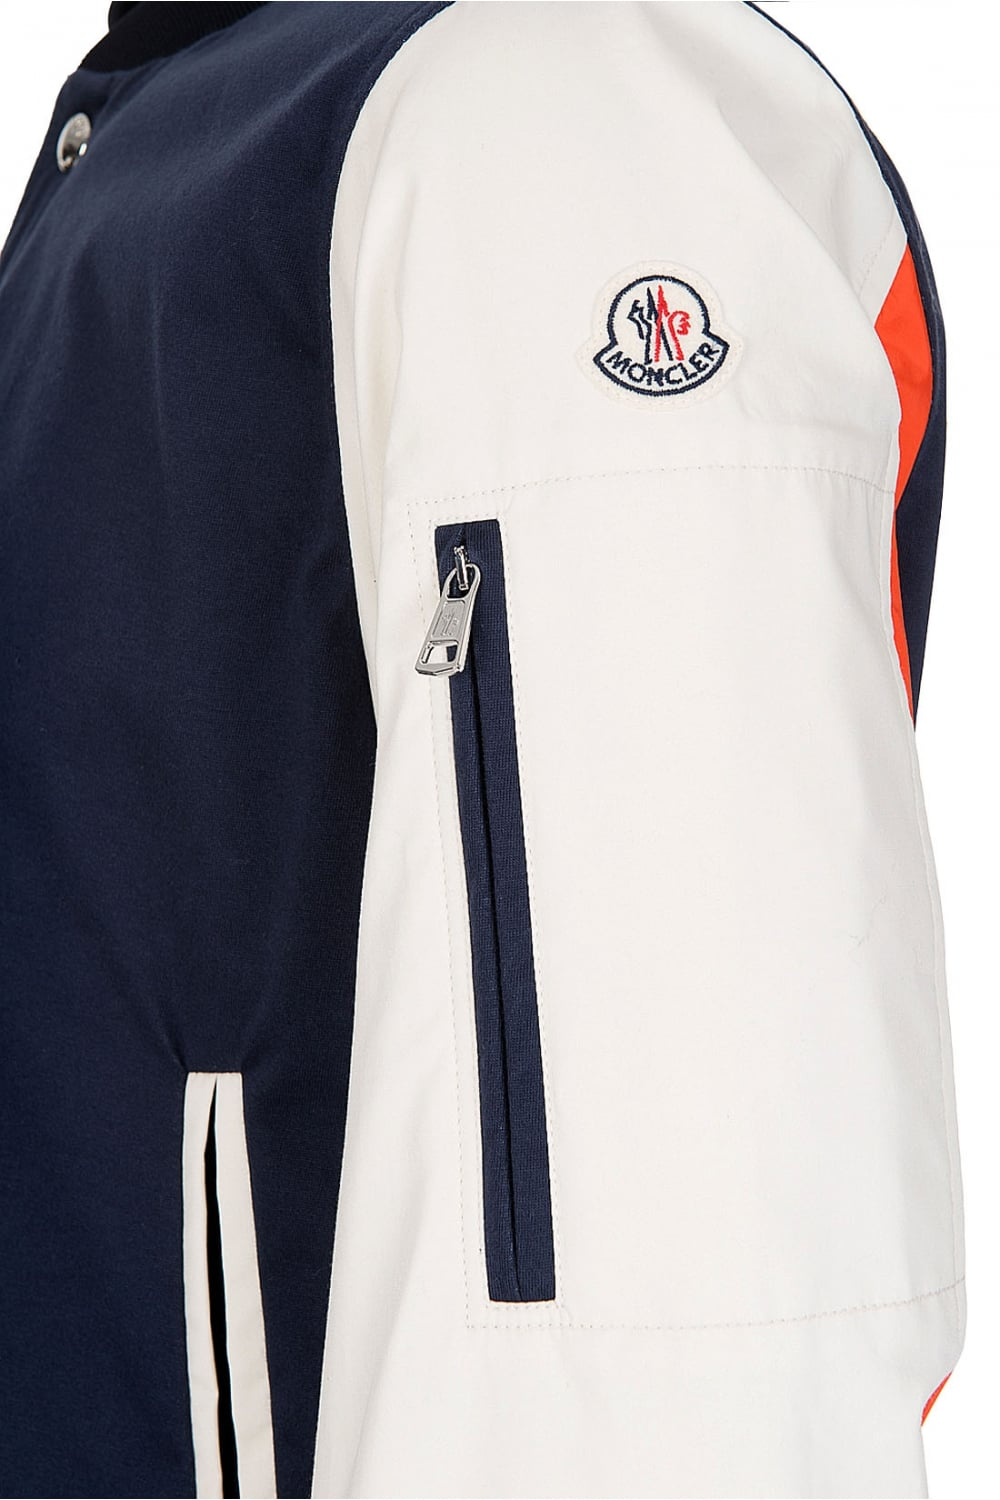 MONCLER BLIER - Clothing from Circle Fashion UK 5c1fee6f6